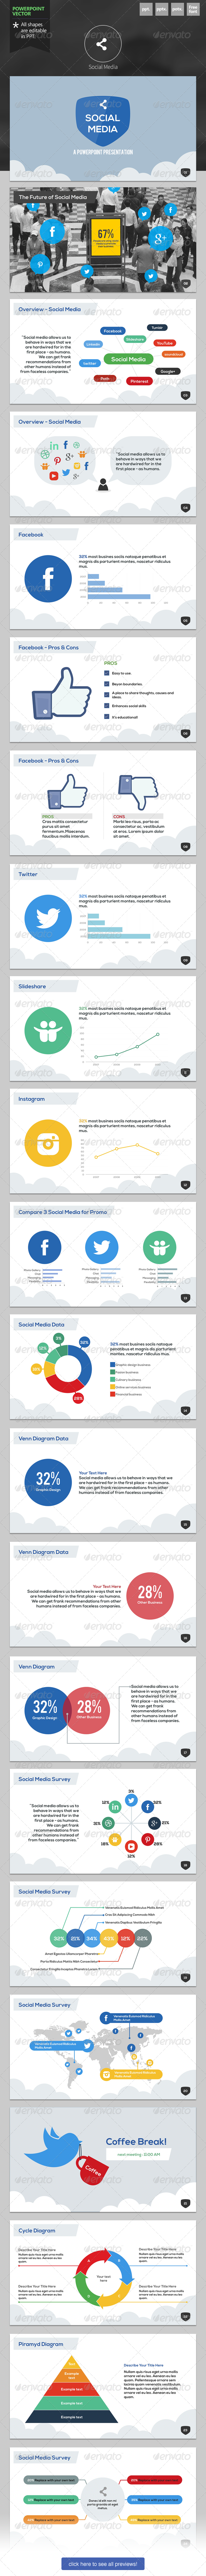 GraphicRiver Social Media Powerpoint Template 6335900